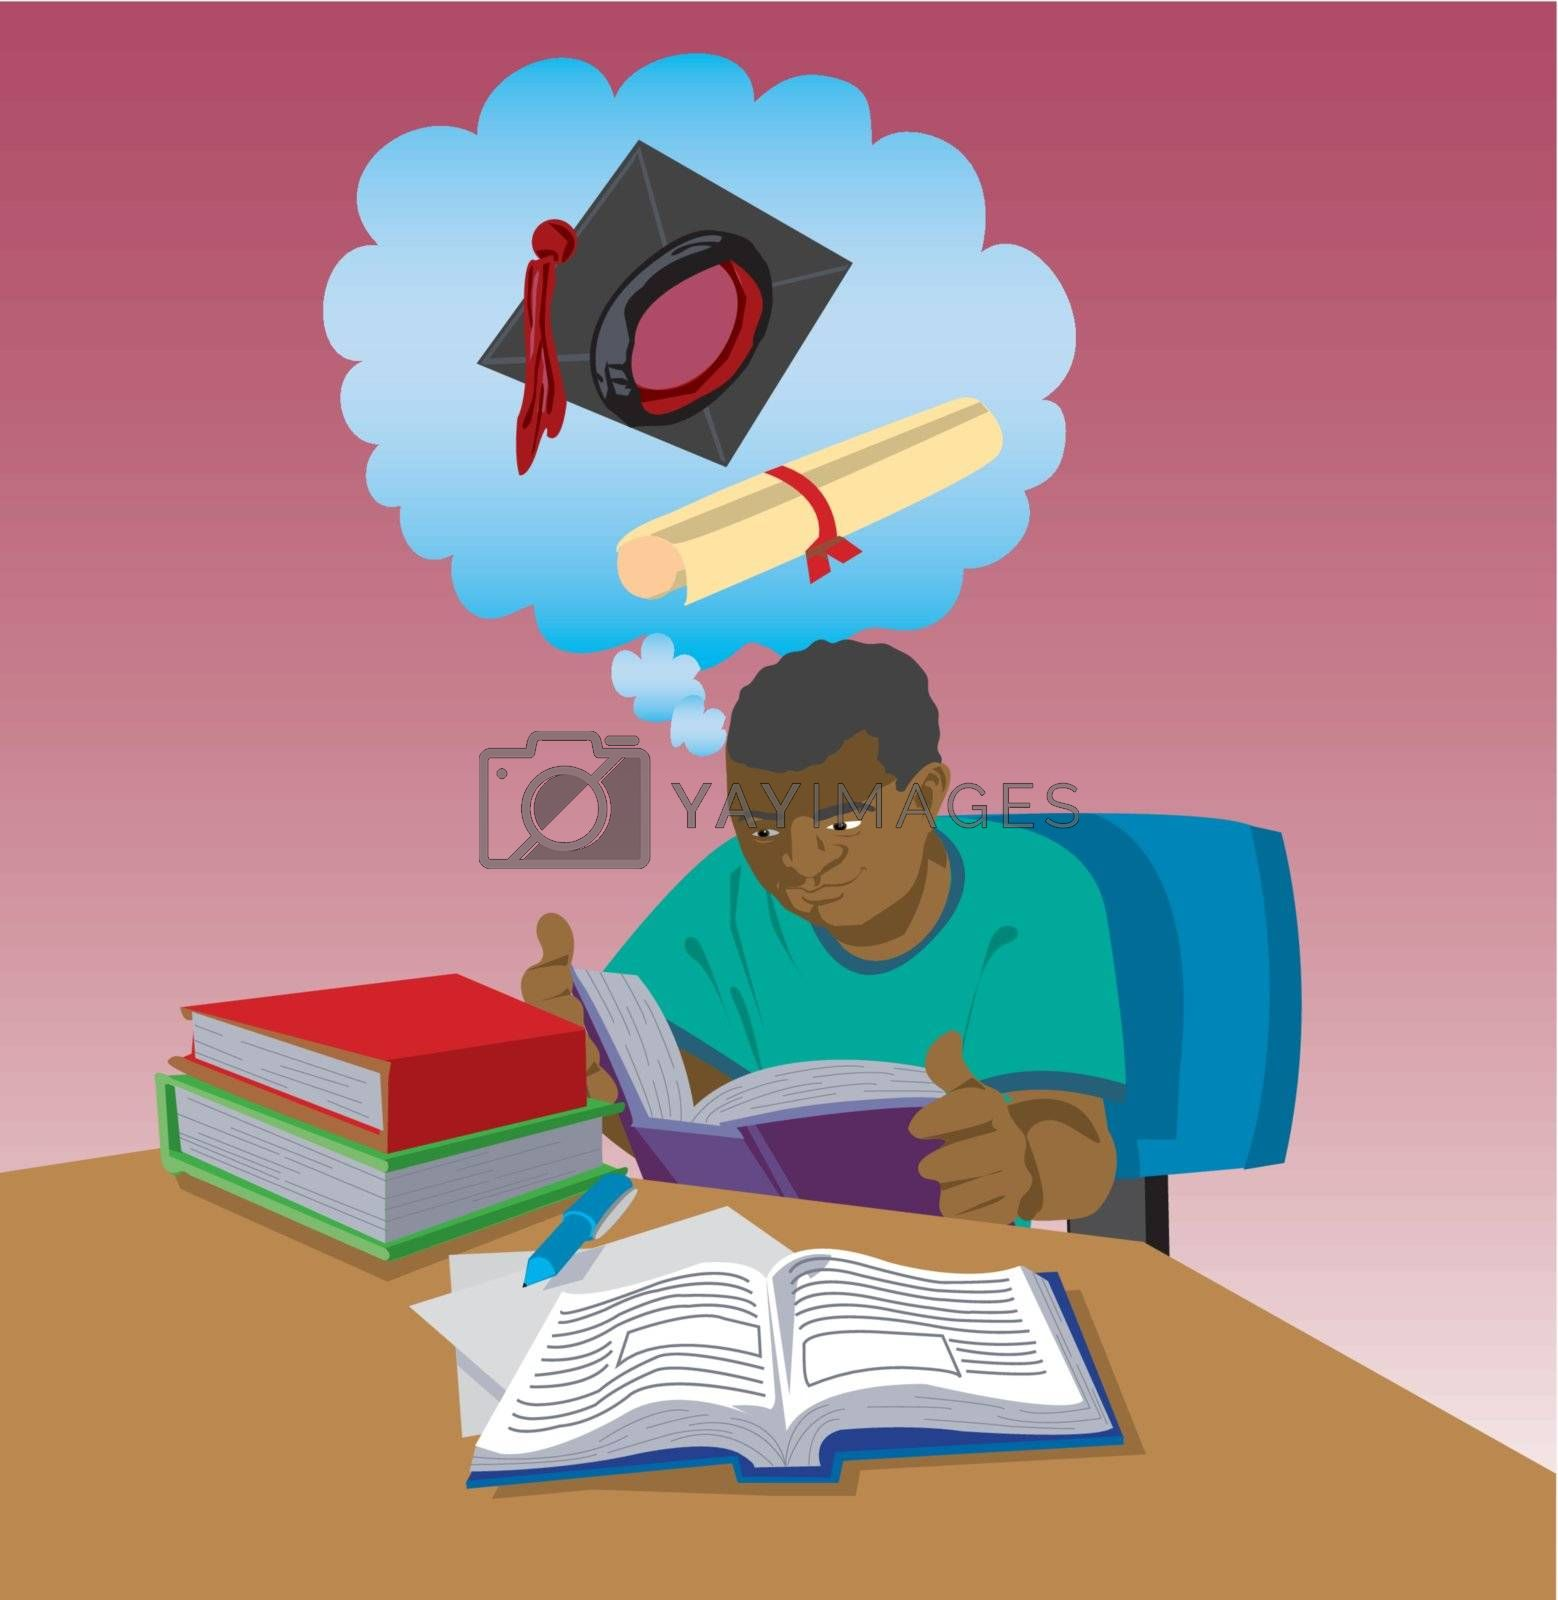 Student studying textbooks with the goal of graduation from school or university. Linear gradients are included. Created from an original drawing. Vector file items are grouped and layered for easy editing.